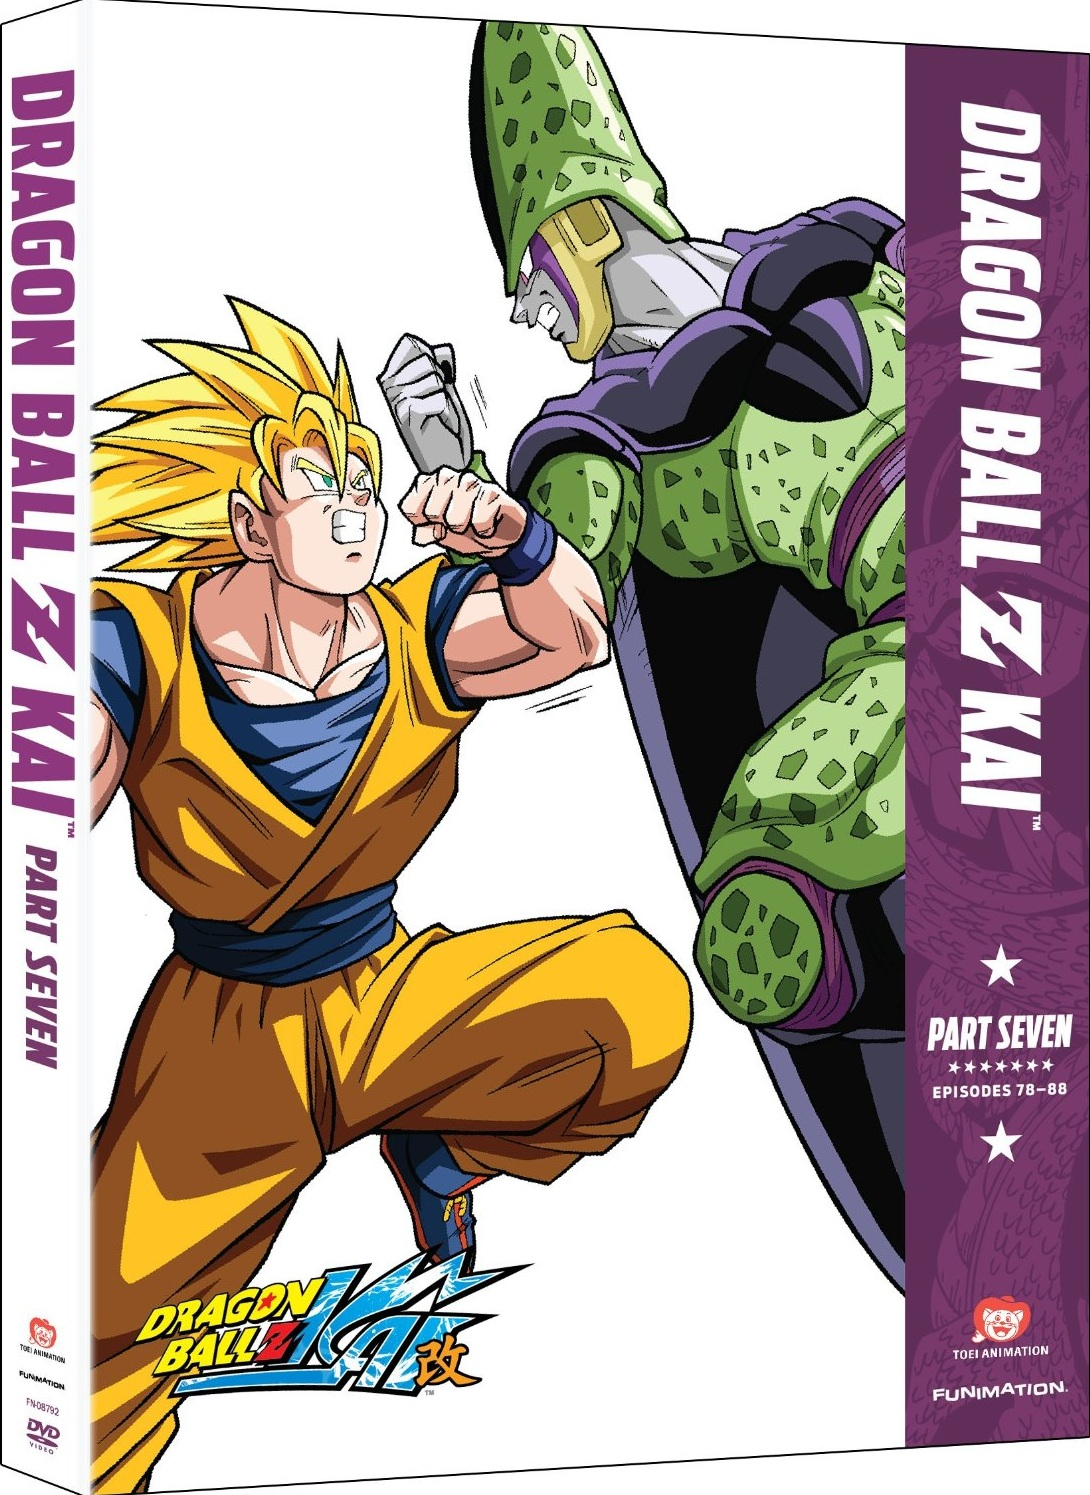 Dragon Ball Z Kai Part 7 Studio Toei Animation Publisher FUNimation Versions Blu Ray DVD Reviewed Release Date March 20 2012